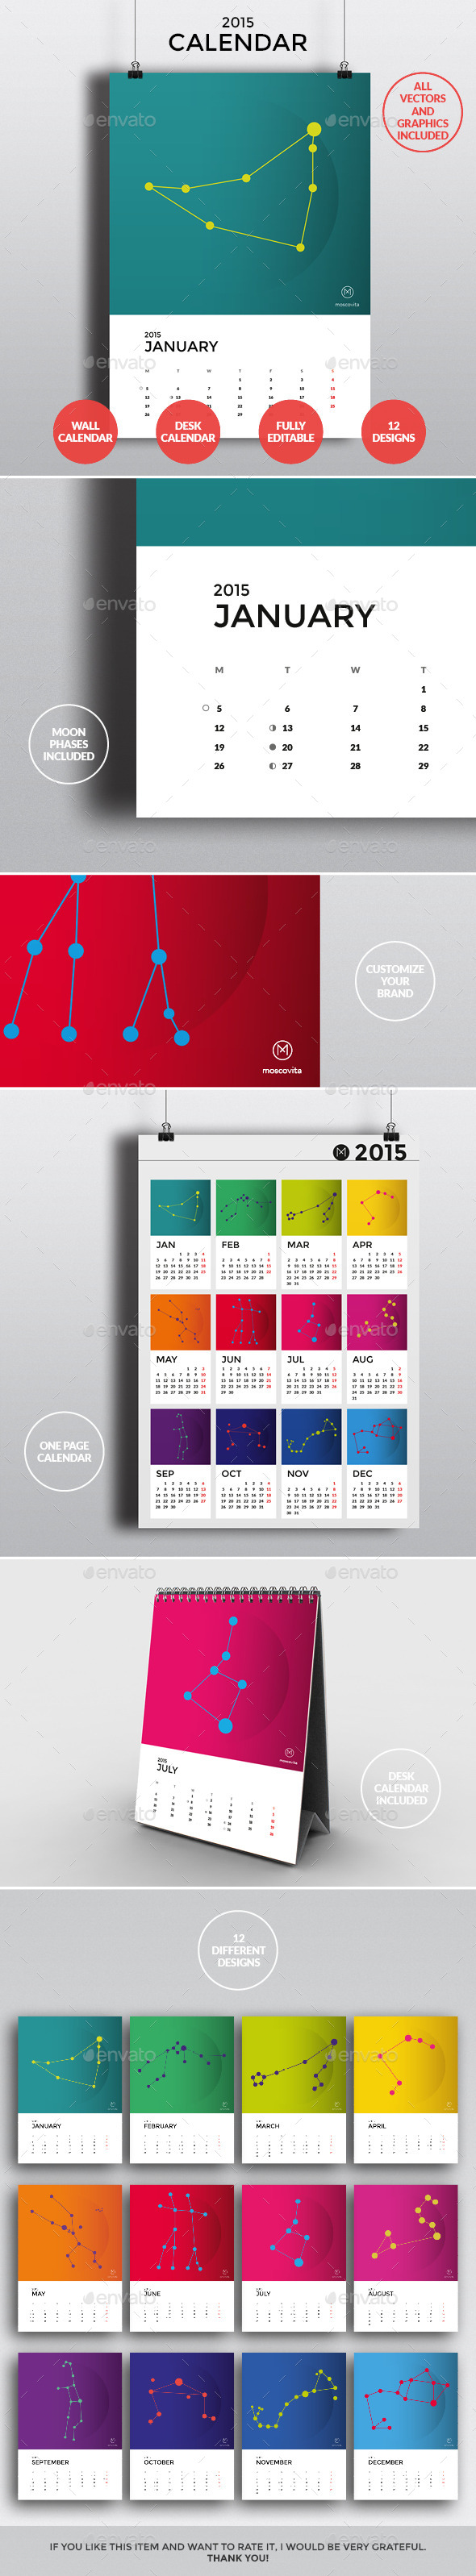 GraphicRiver Calendar 9829263